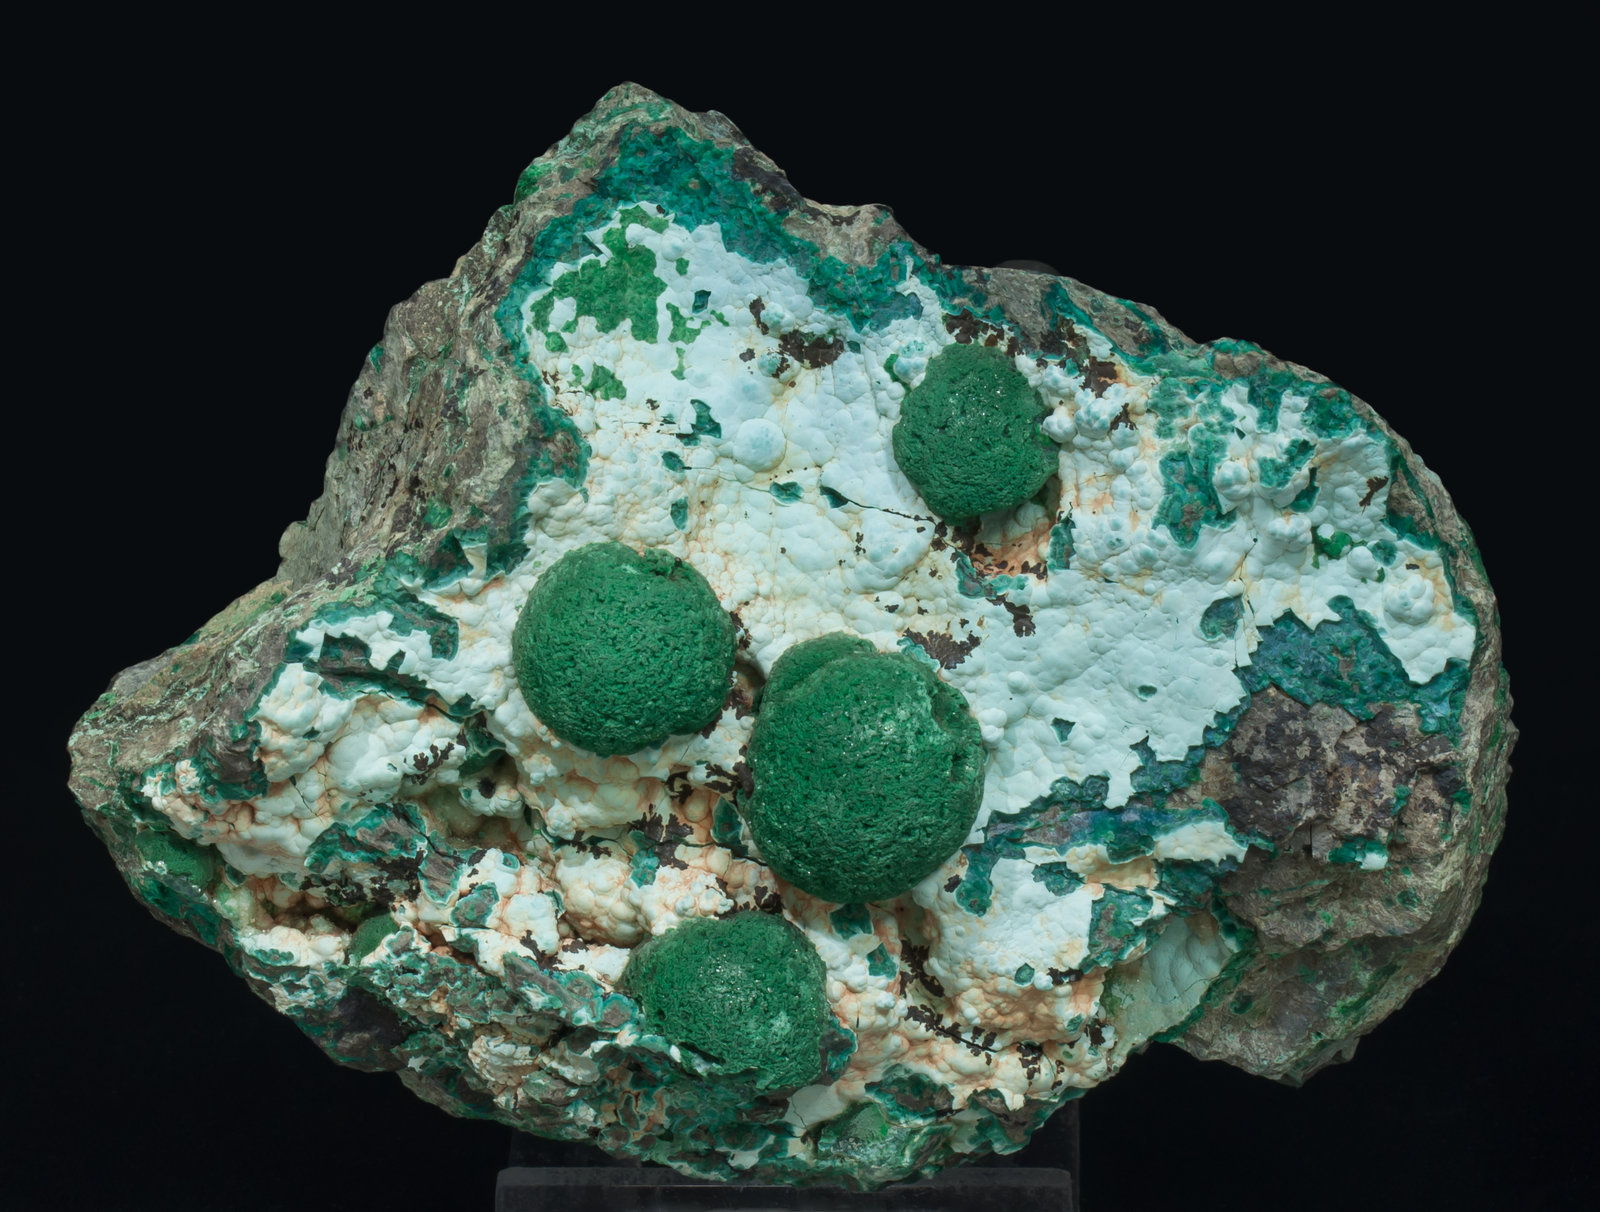 specimens/s_imagesAE4/Malachite-ER96AE4f.jpg